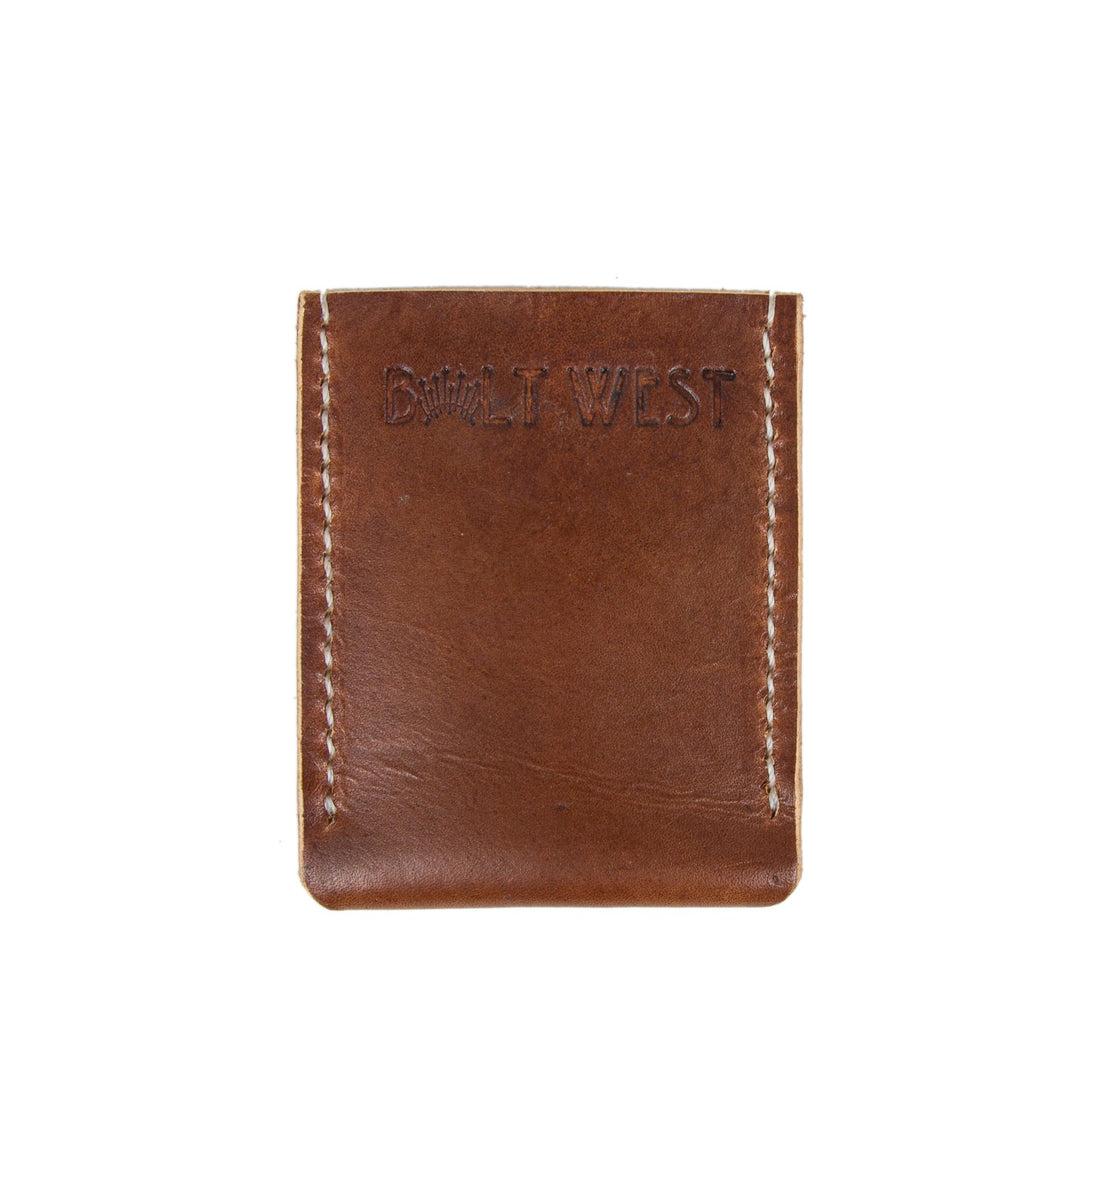 Bolt West Card Wallet - Accessories: Wallets - Iron and Resin